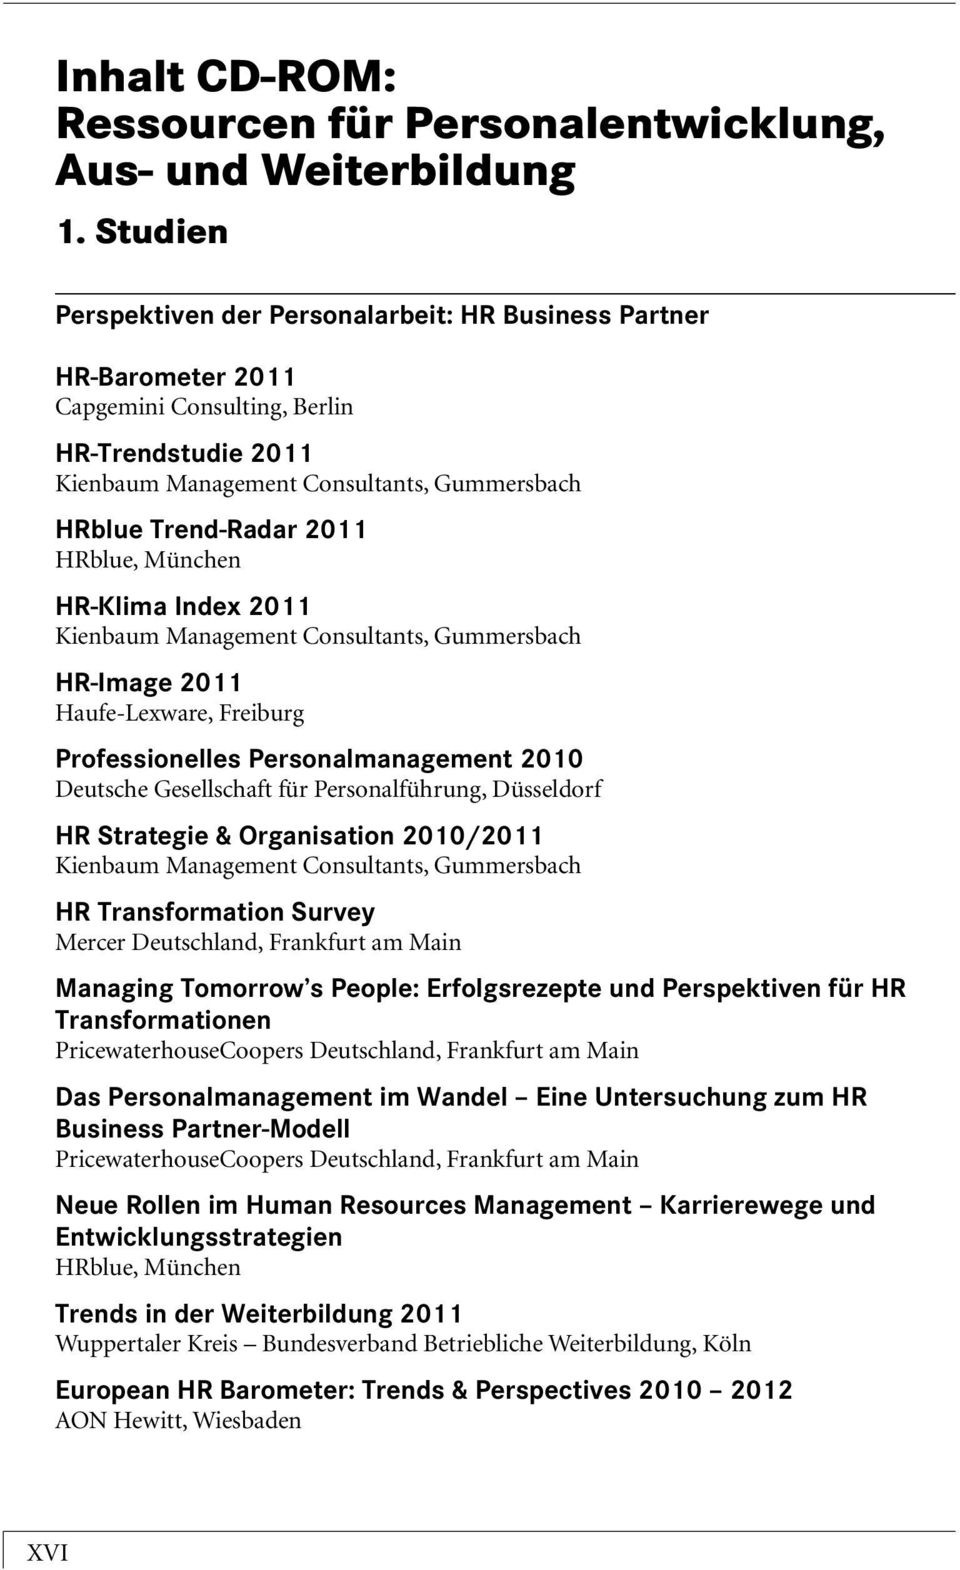 2011 Haufe-Lexware, Freiburg Professionelles Personalmanagement 2010 Deutsche Gesellschaft für Personalführung, Düsseldorf HR Strategie & Organisation 2010/2011 HR Transformation Survey Mercer